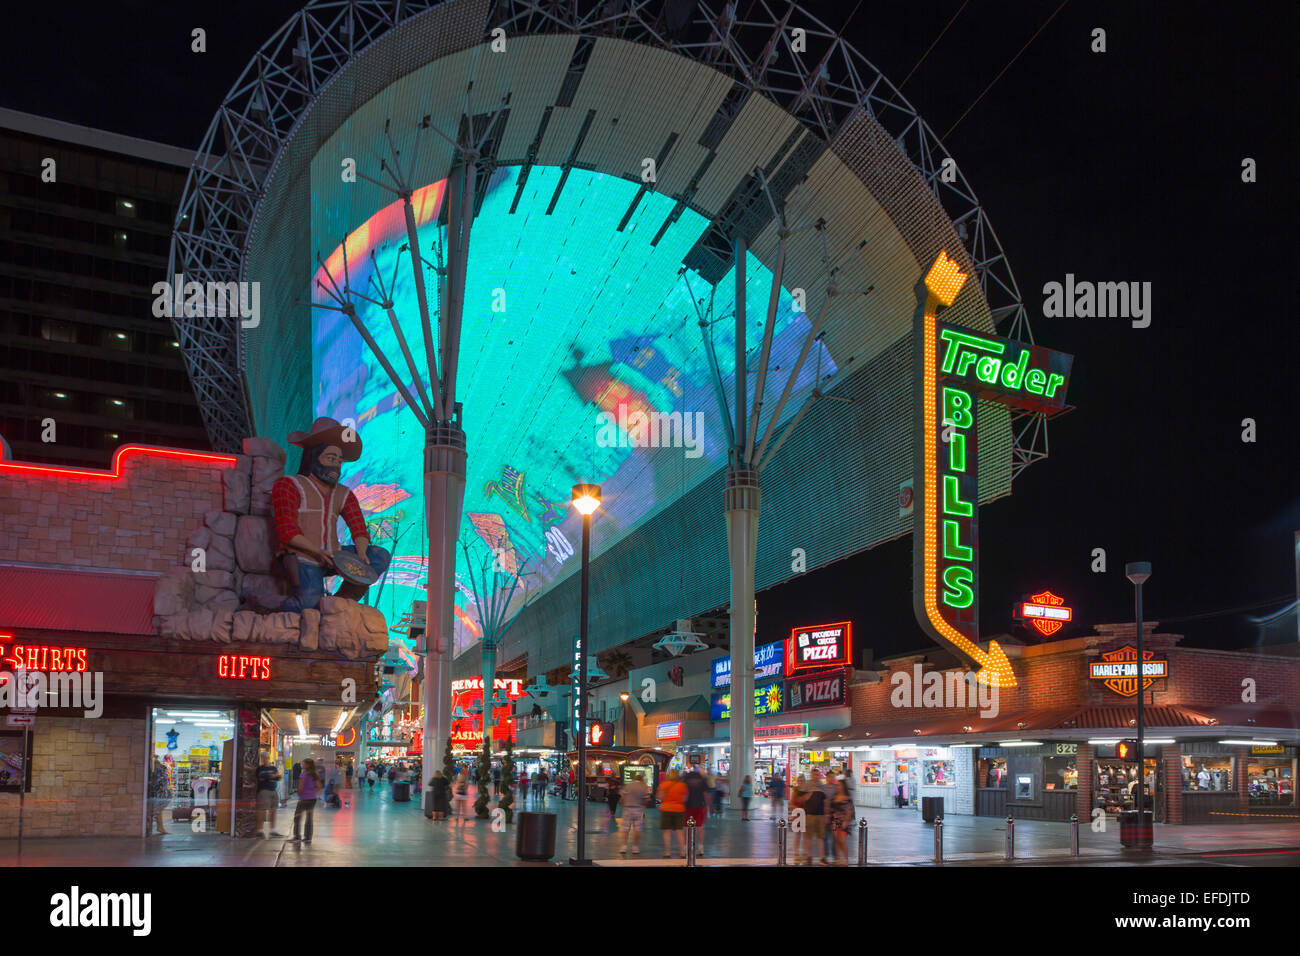 Fremont Street Experience Stock Photos & Fremont Street Experience ...